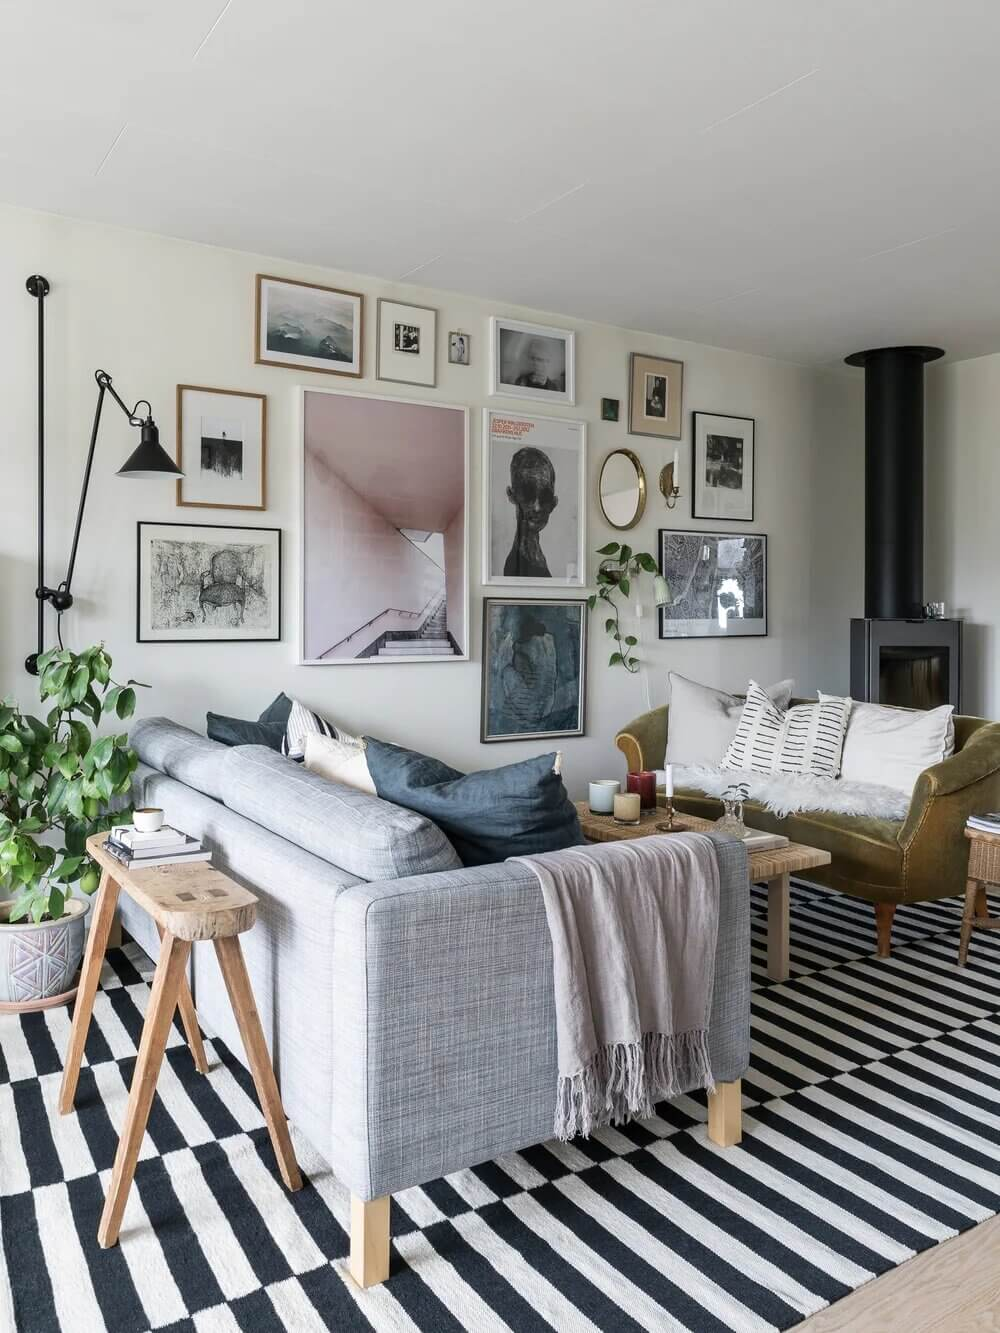 A Scandinavian 1970s Villa Filled With Vintage Decor and Art